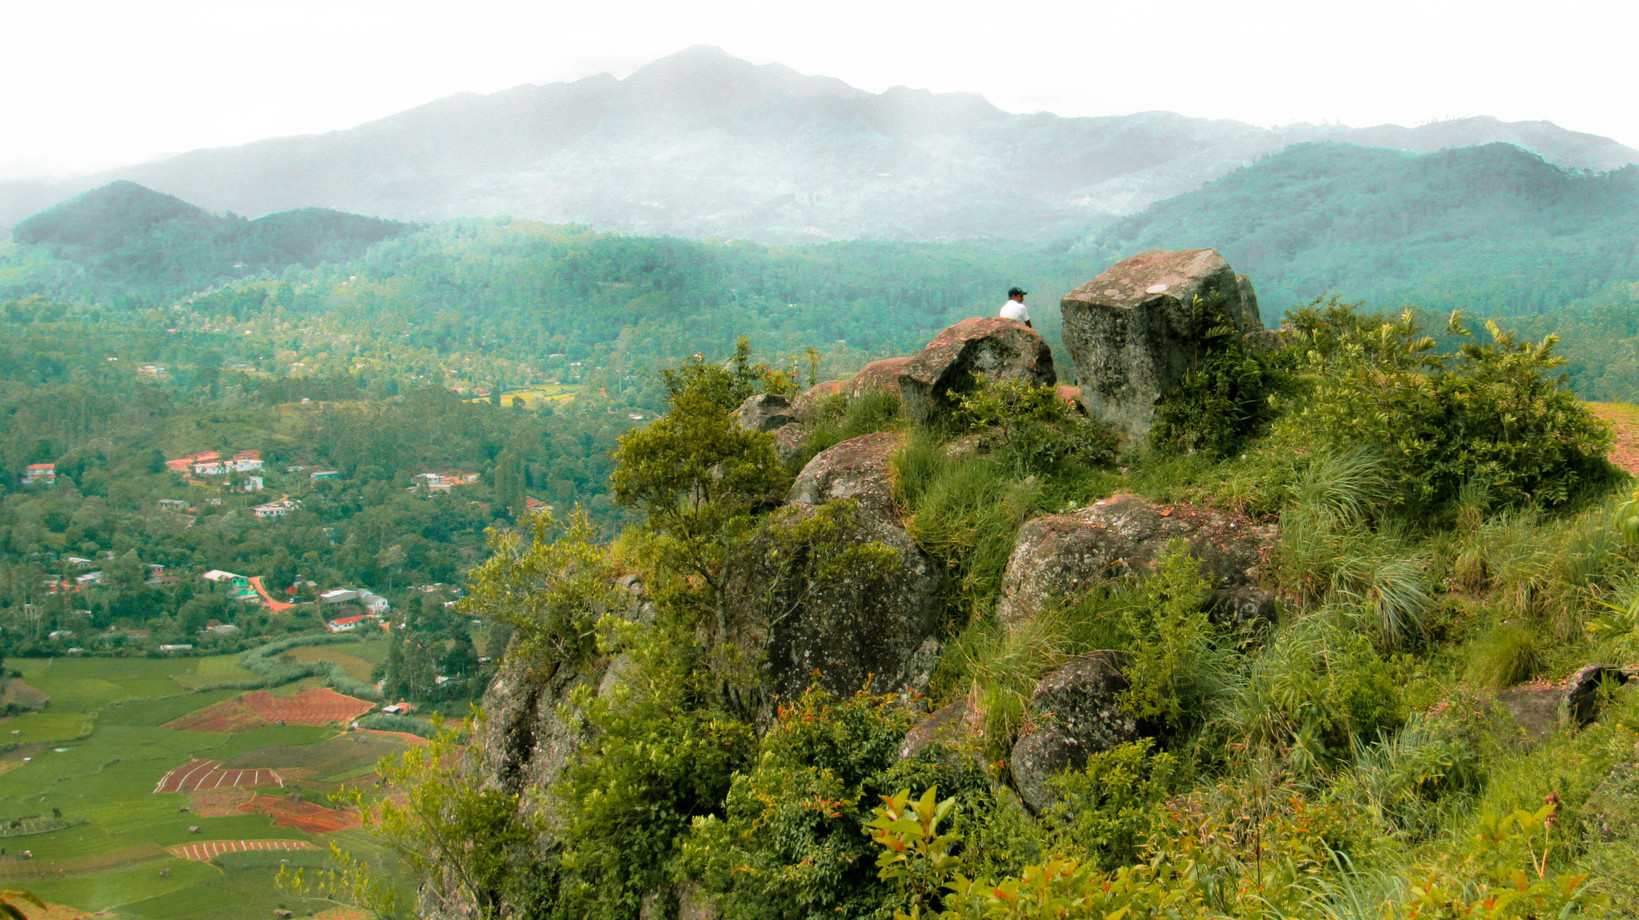 Things to do in Bandarawela